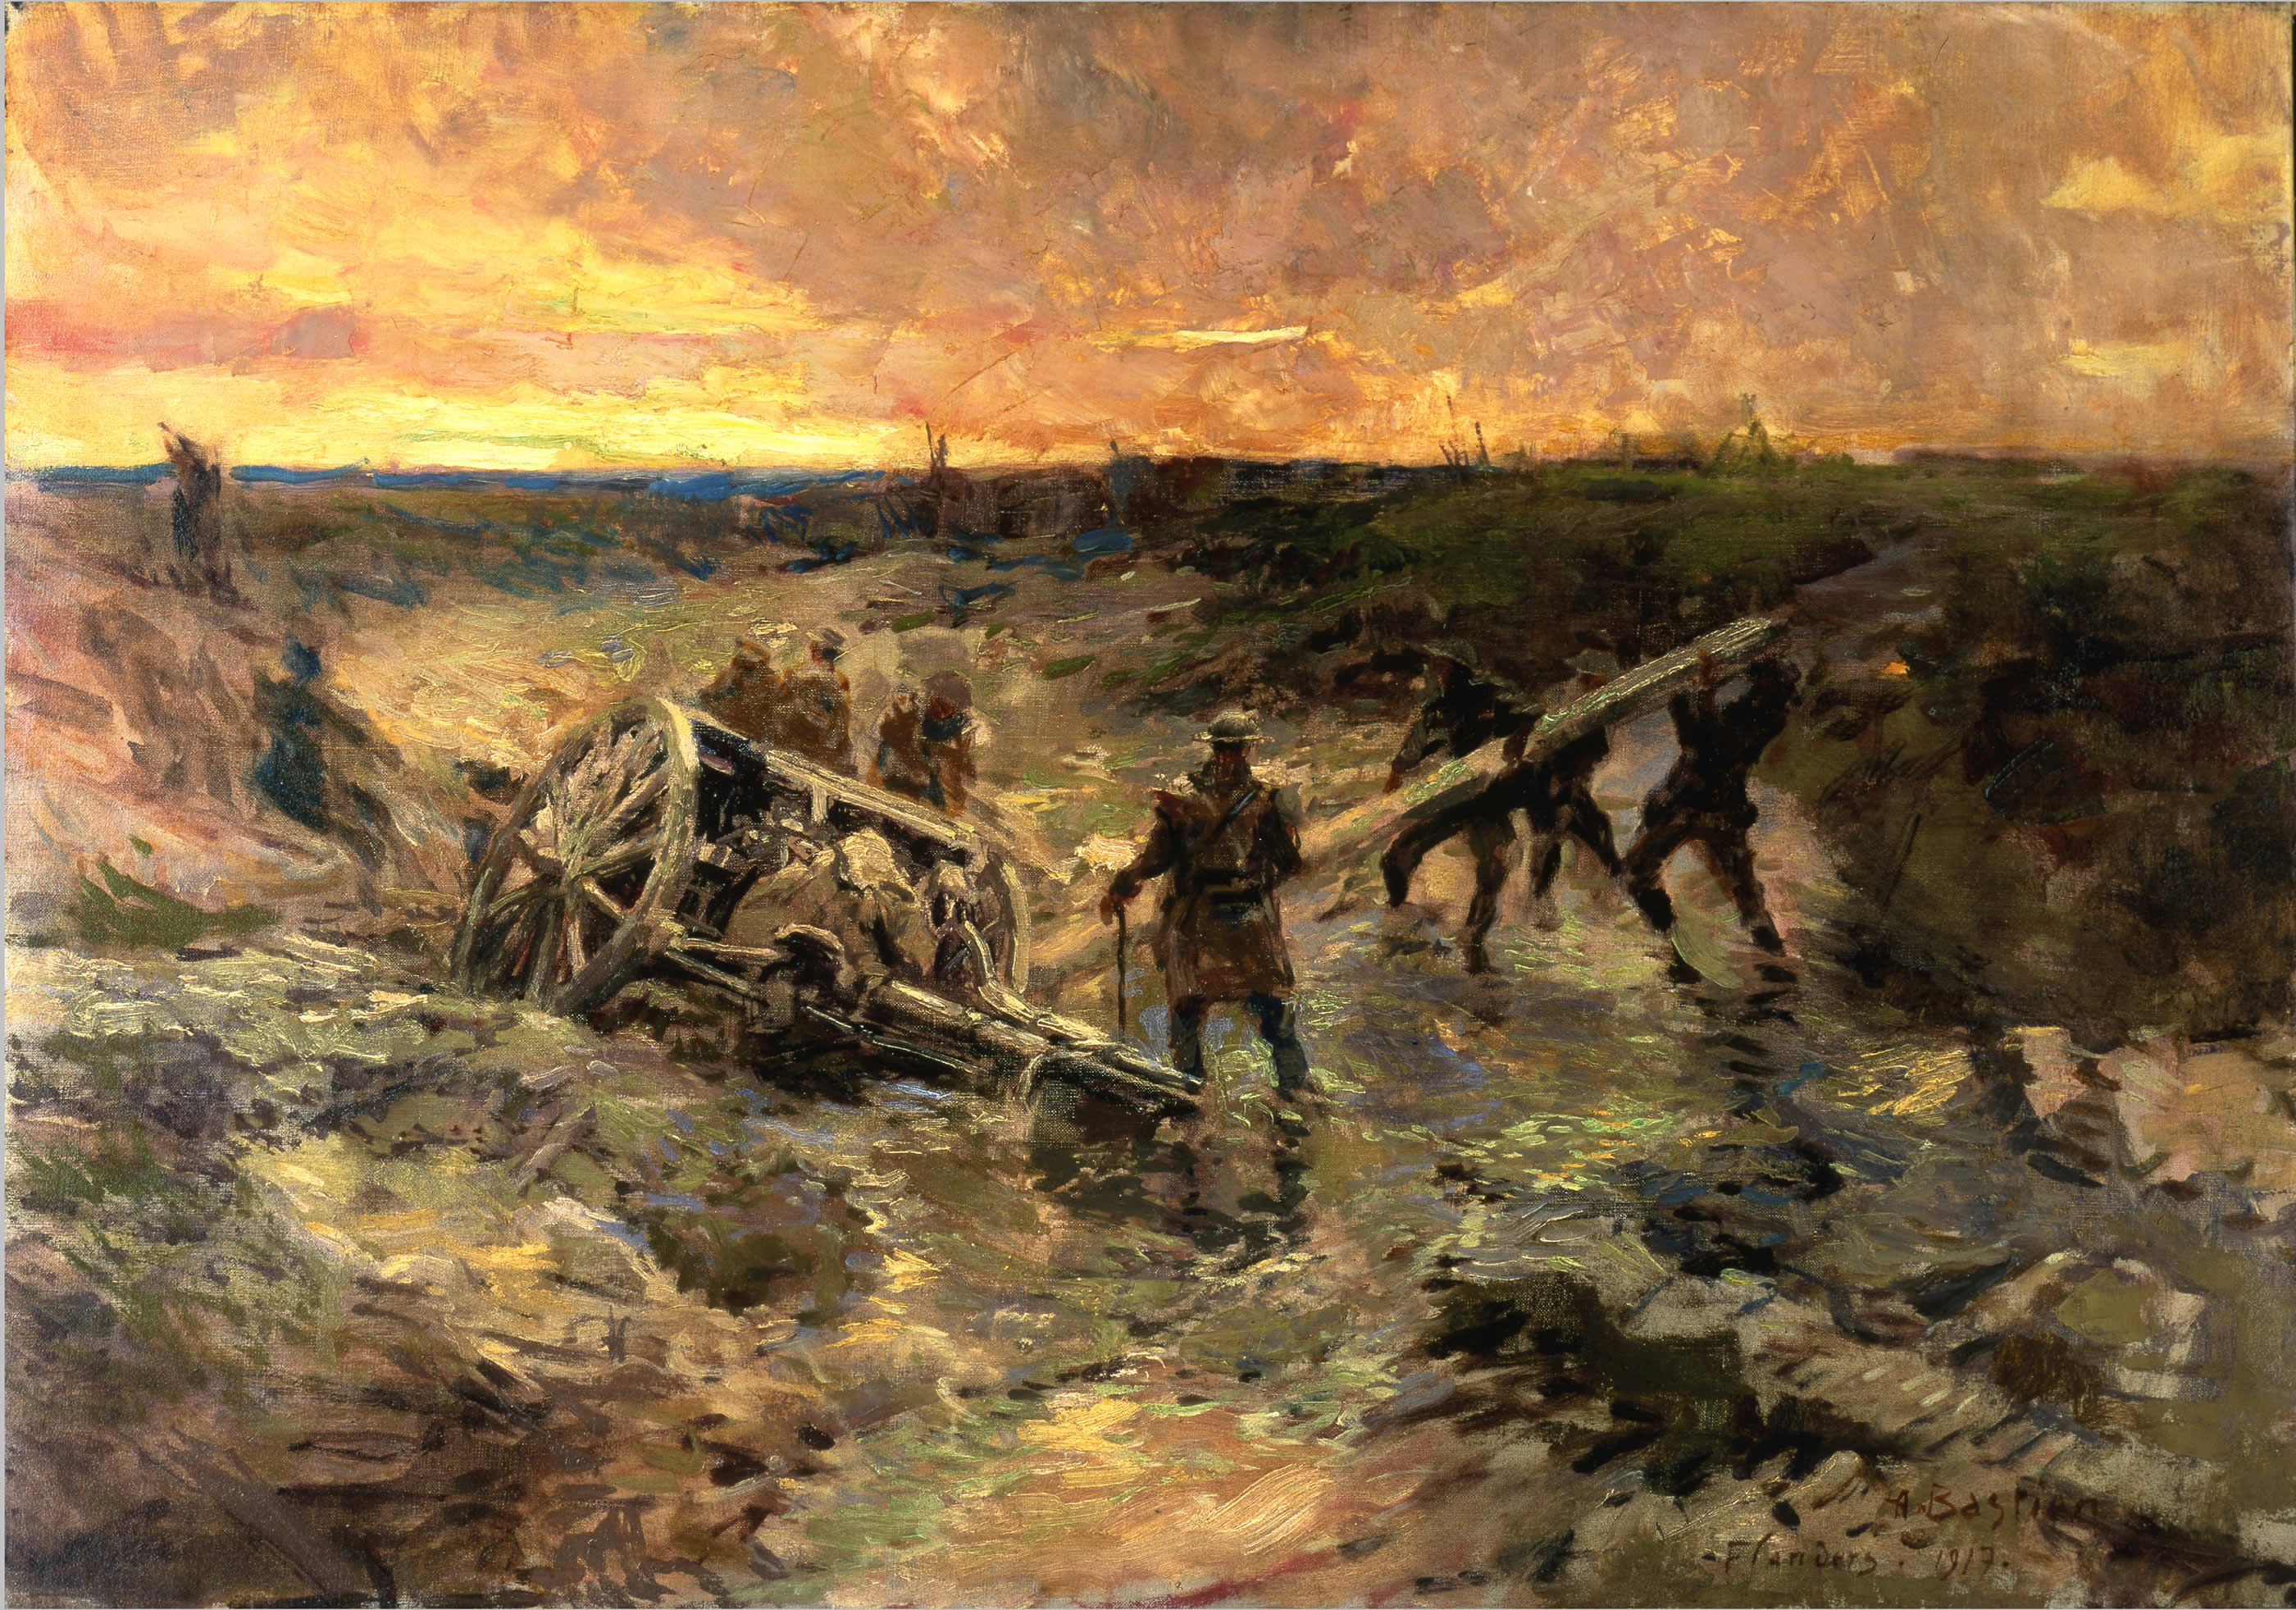 Canadian soldiers in the mud, by Alfred Bastien (source: commons.wikimedia.org)